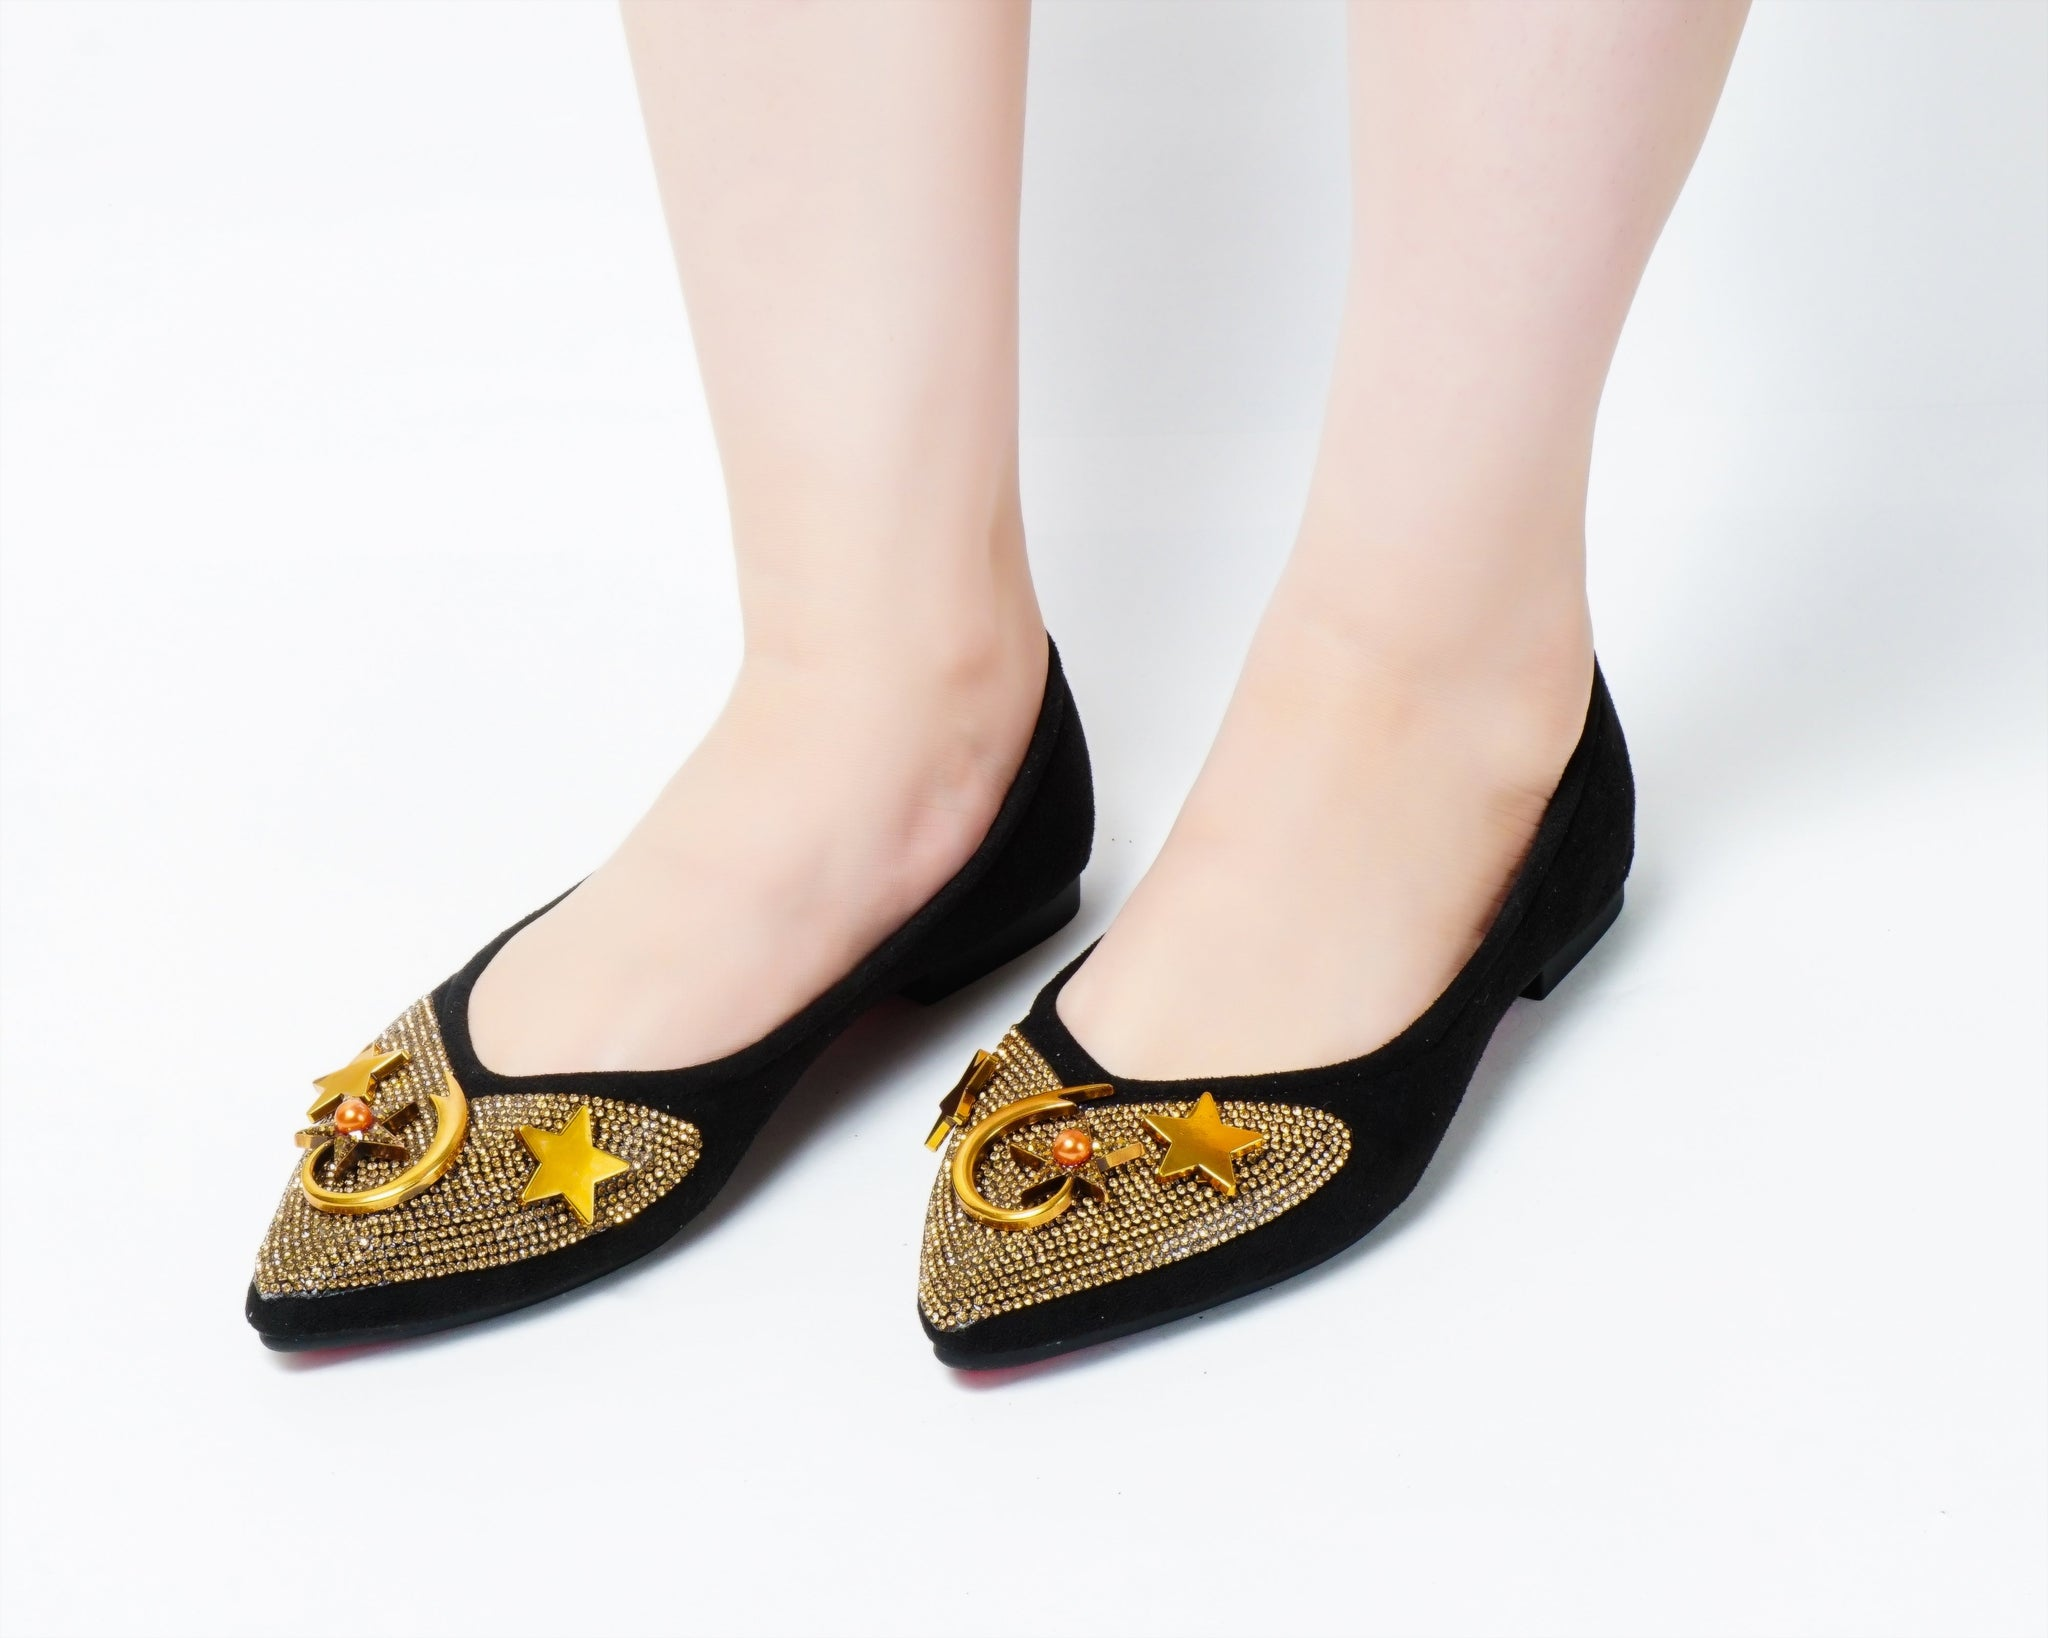 Moon Black | Flats | Loafer | Slip-ons | Dech barrouci